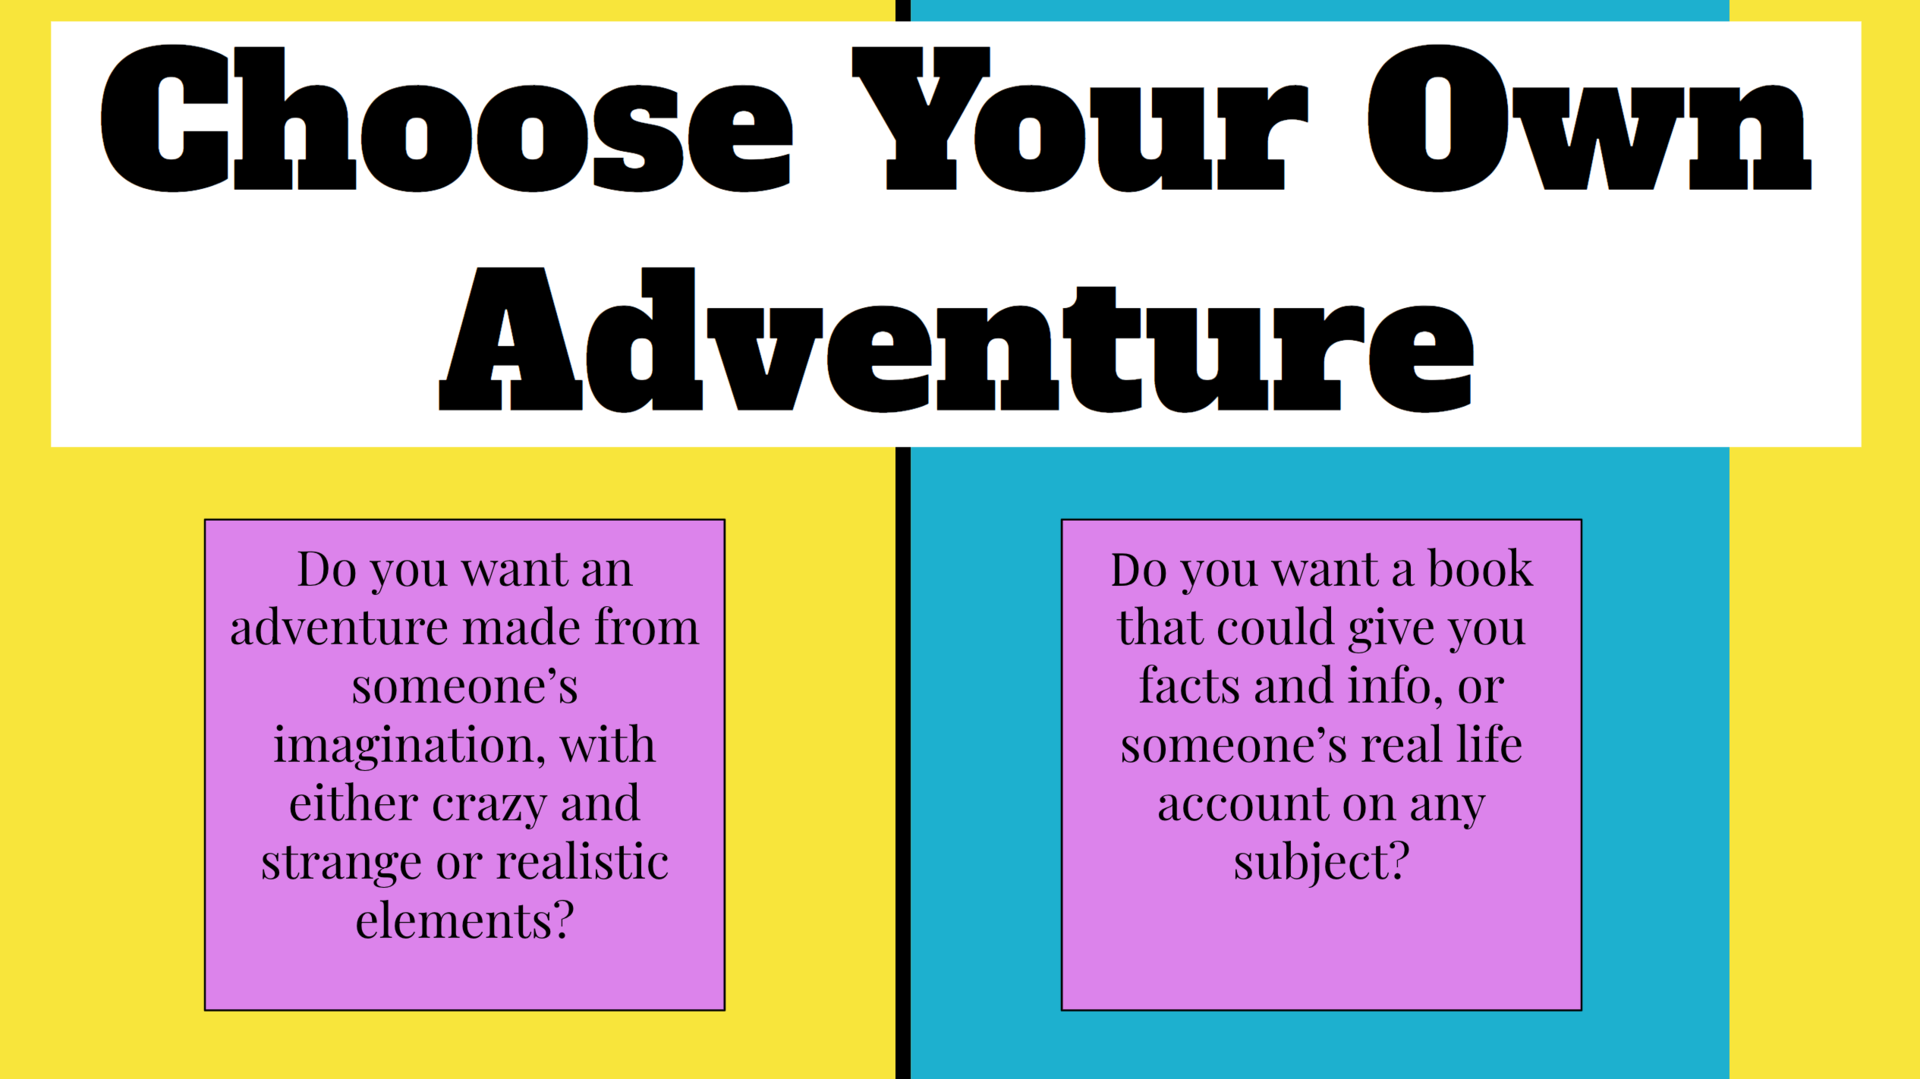 Choose Your Own Adventure start